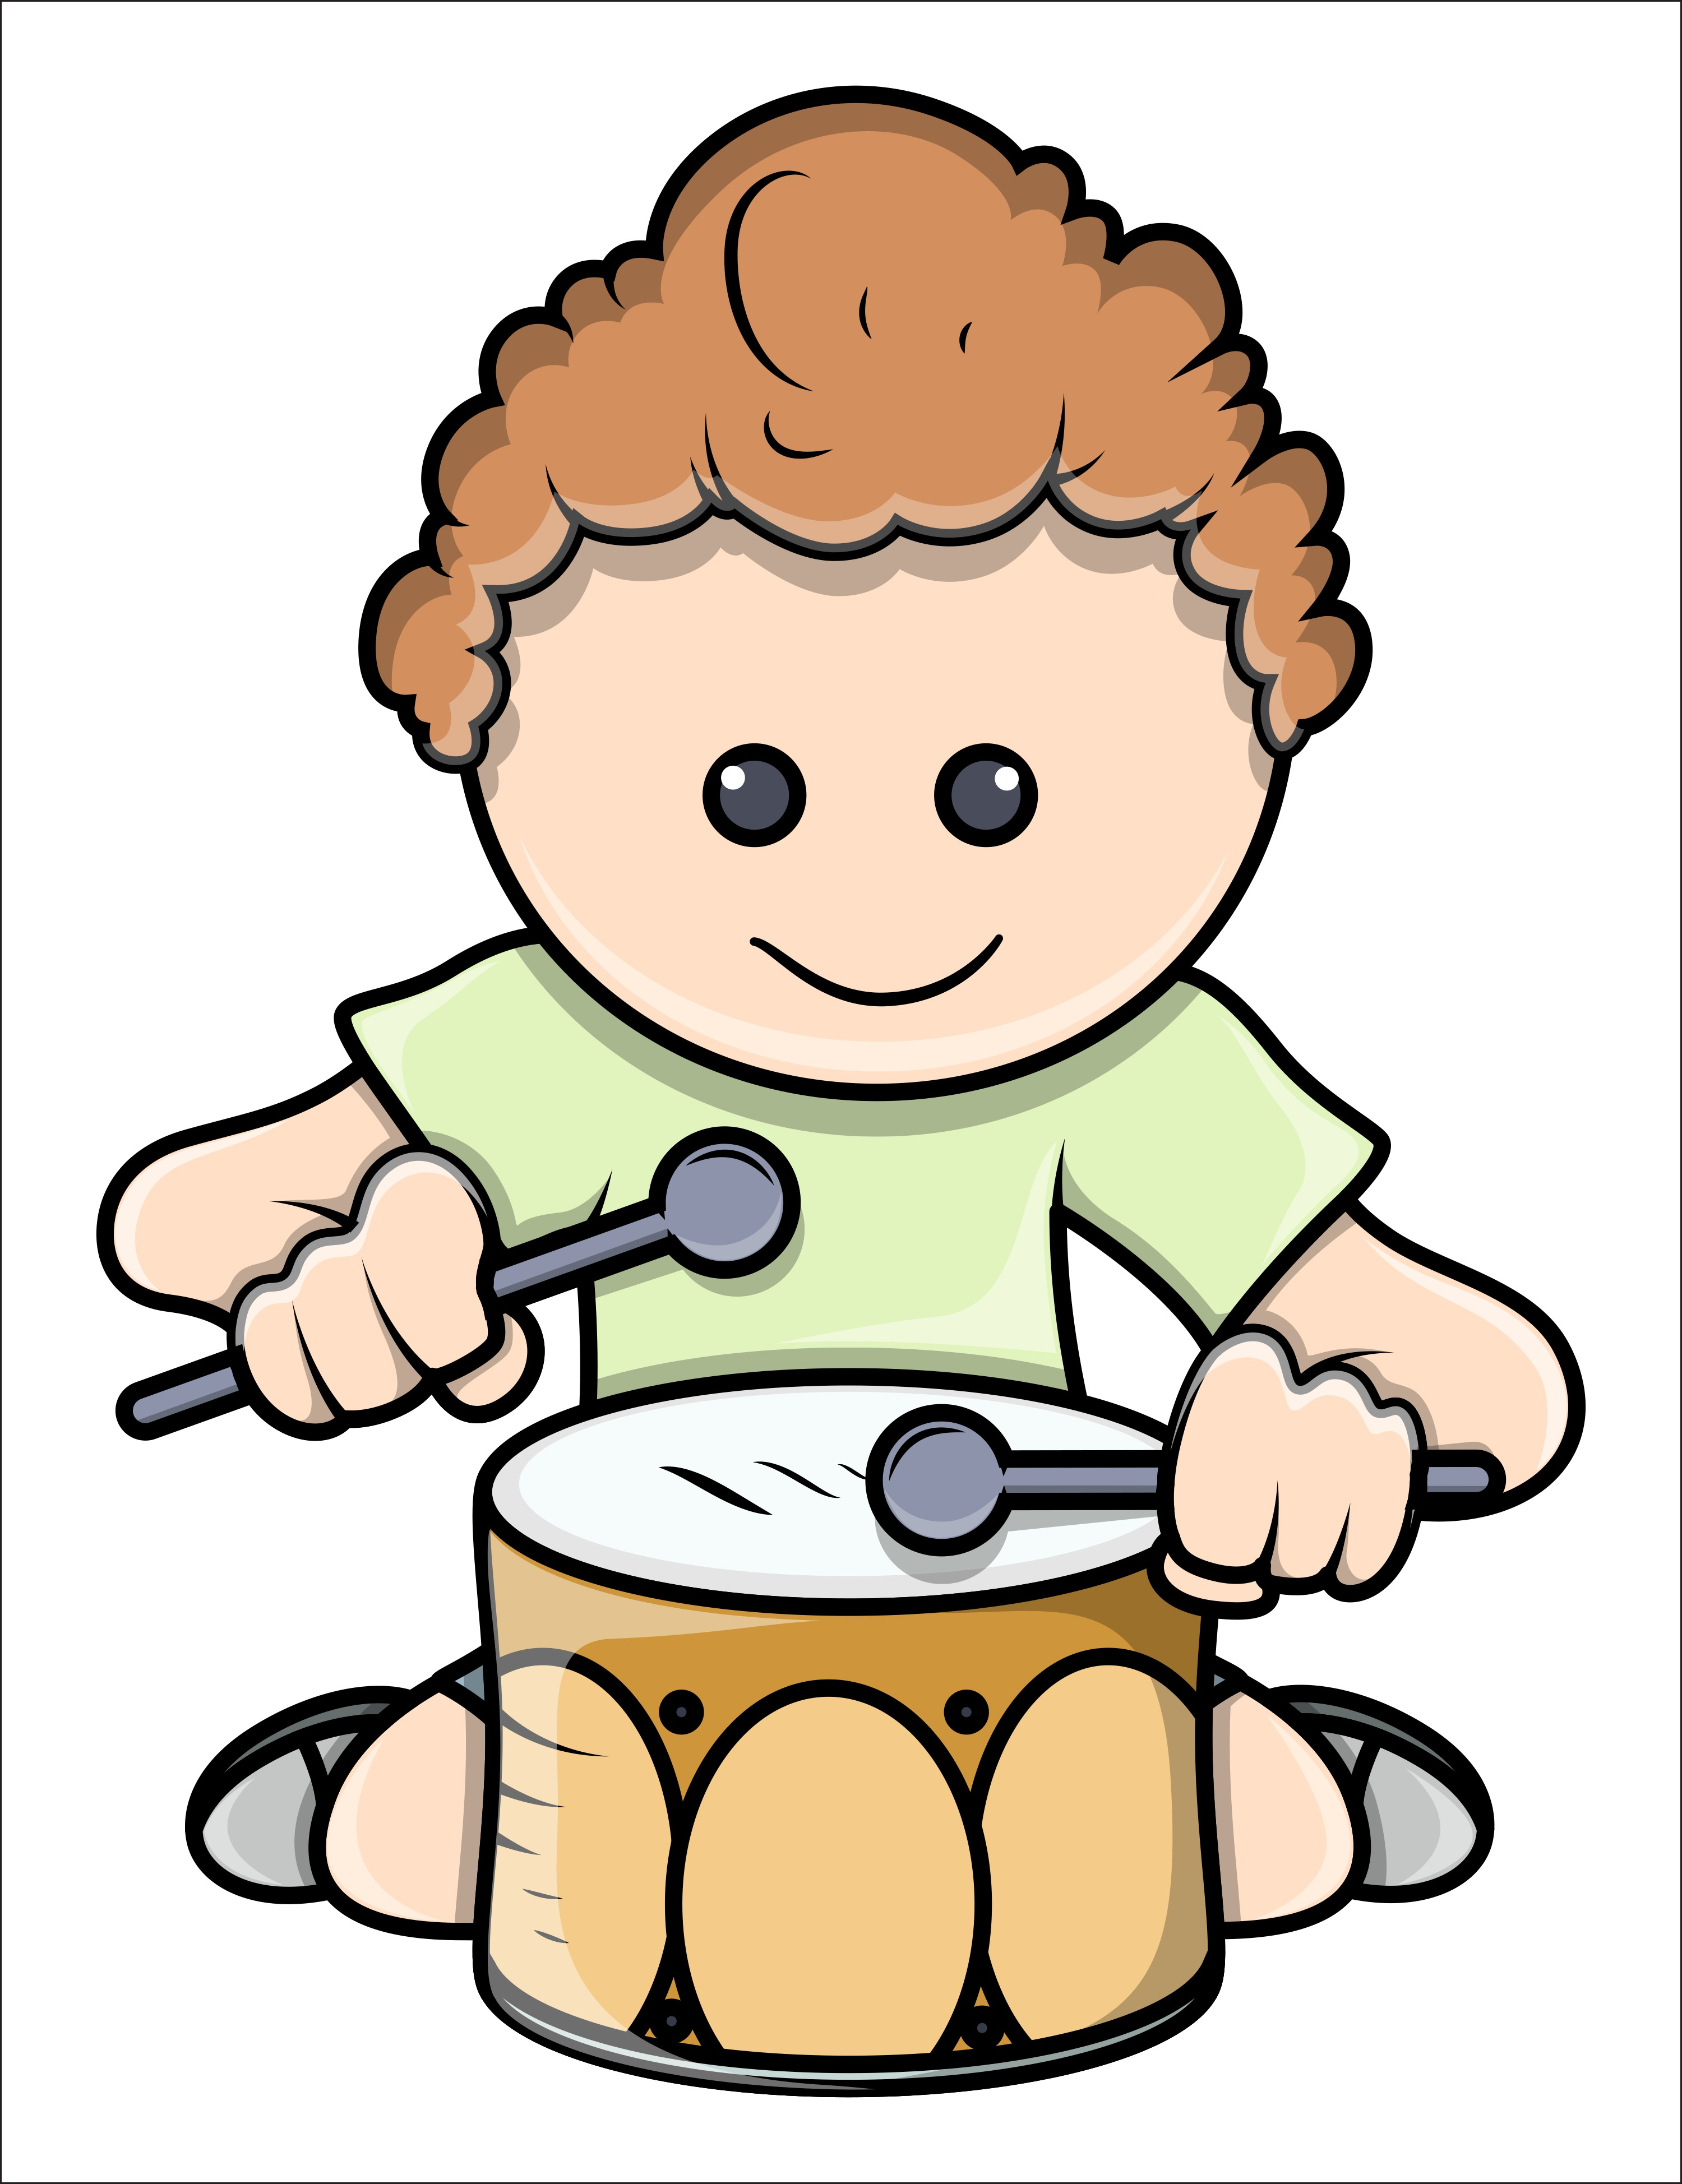 boy-playing-drum-vector-illustrations_Q1JCs-